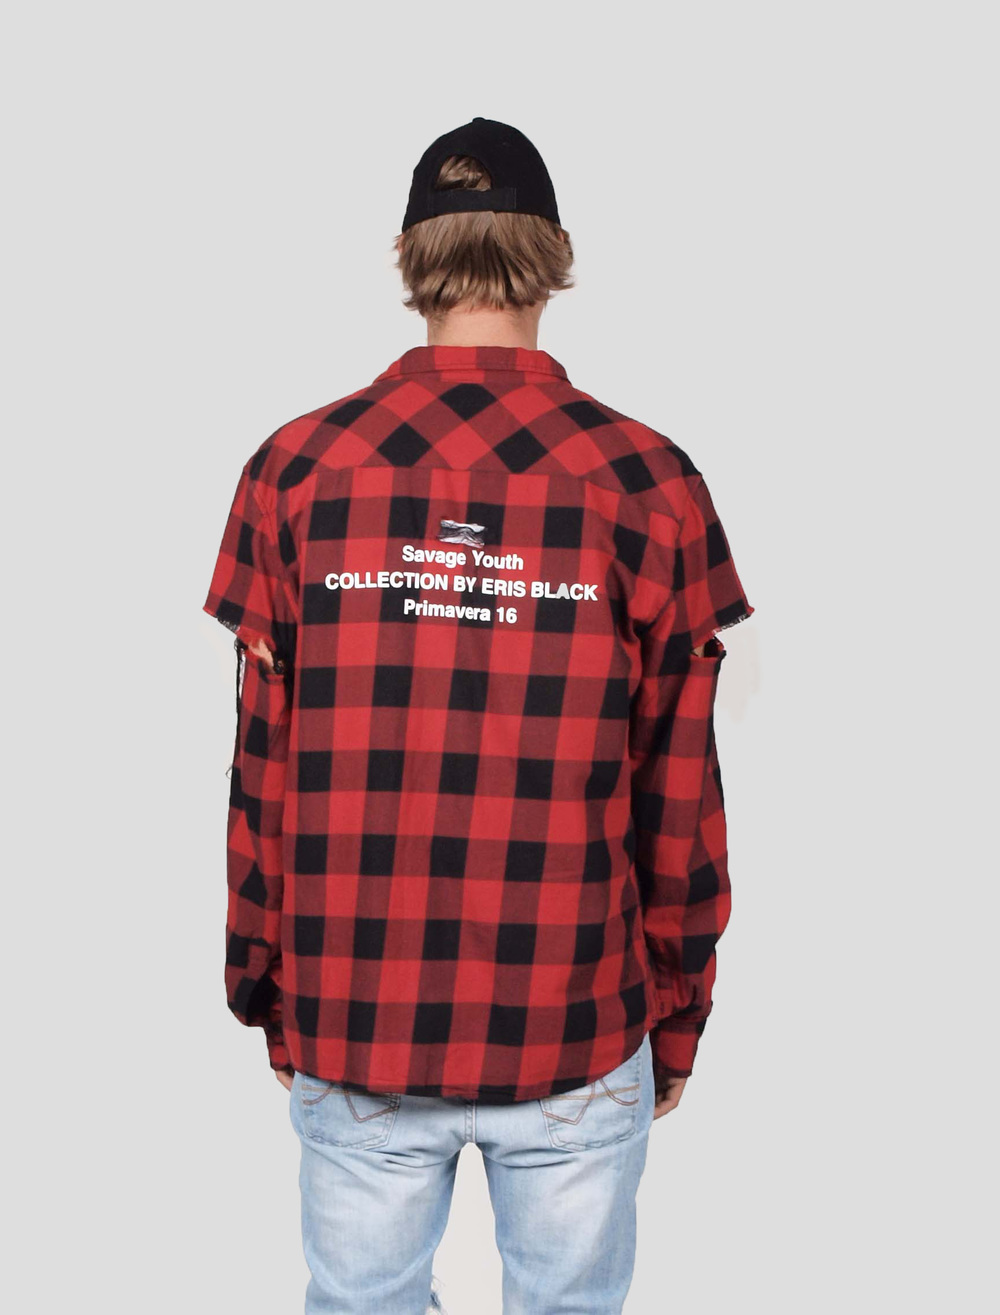 ERIS BLACK - RED & BLACK DISTRESSED PLAID SHIRT